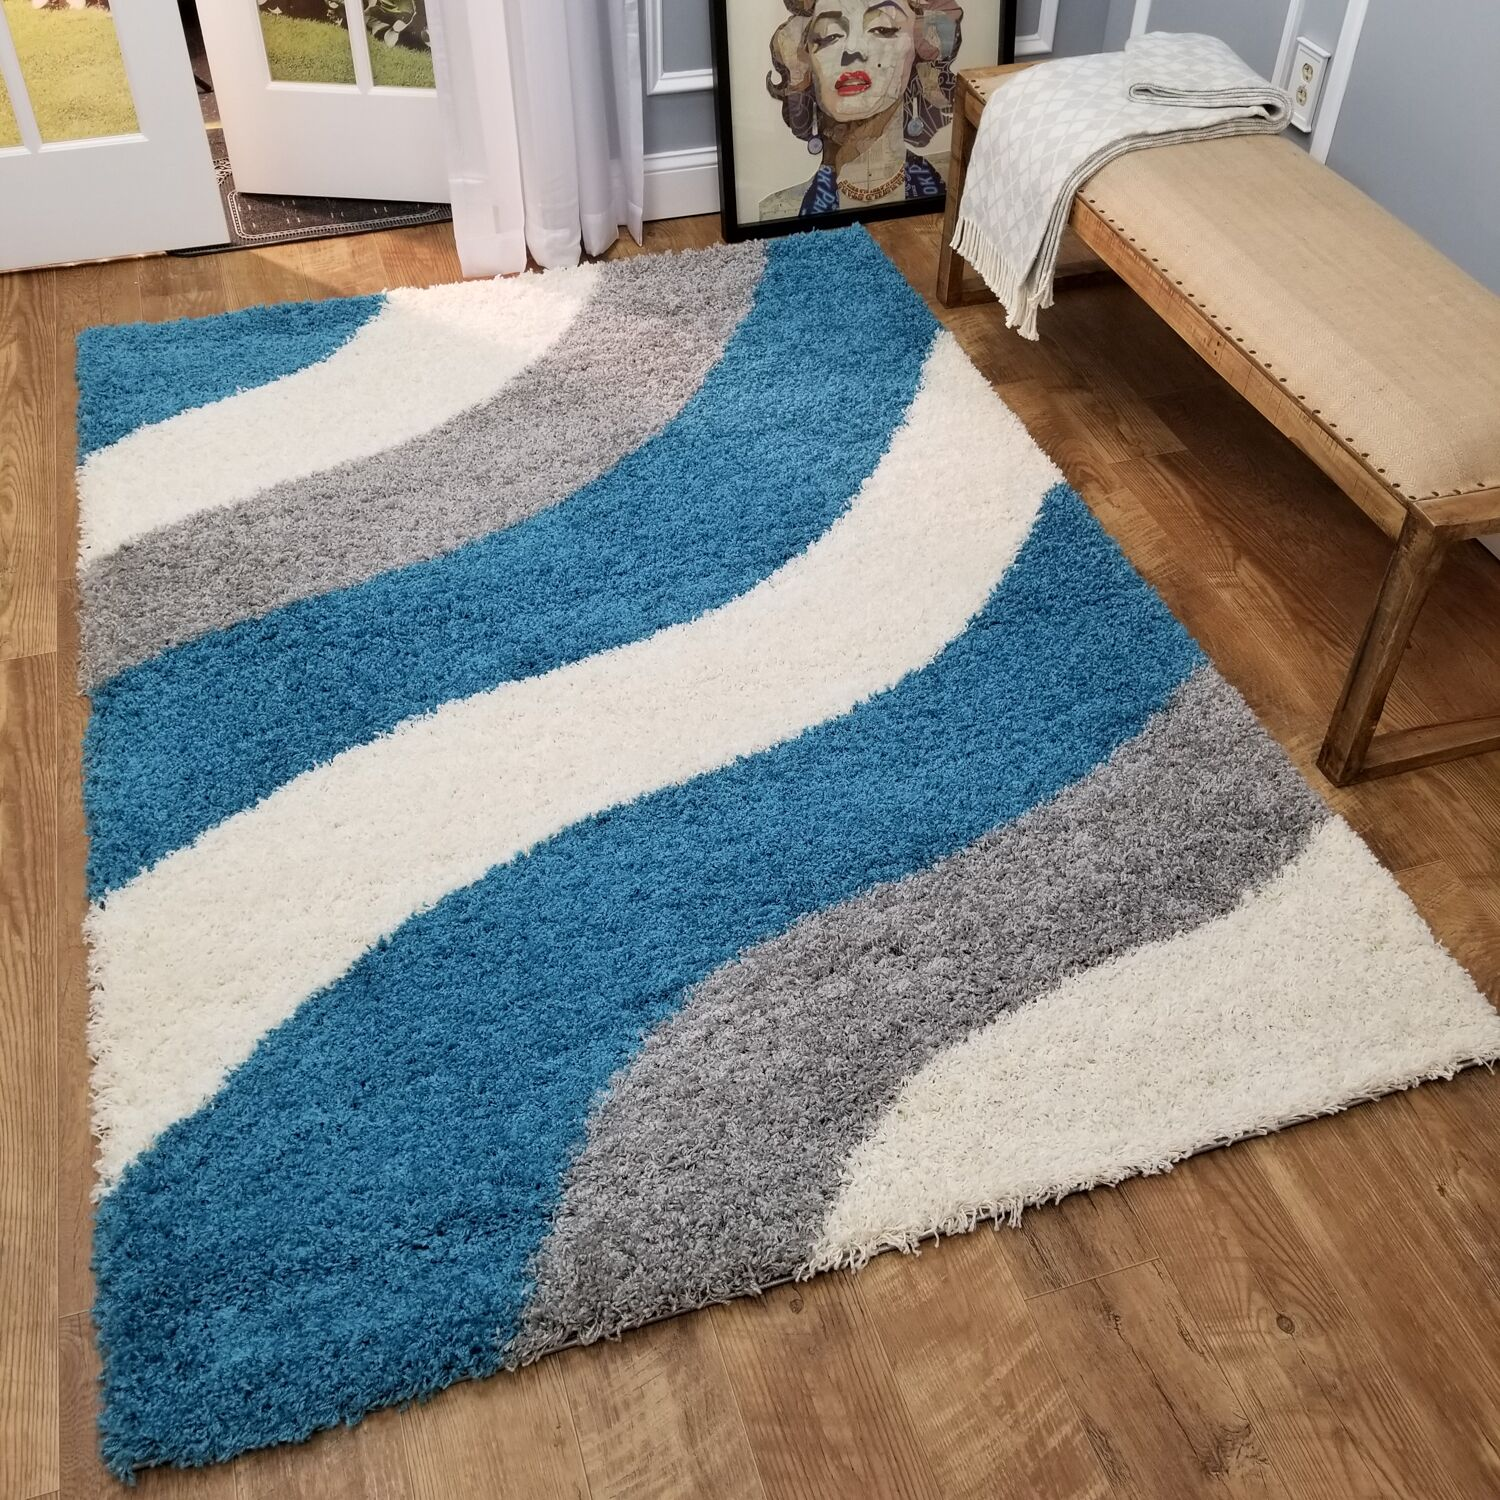 Burns Block Striped Waves Contemporary White/Turquoise Blue Shag Area Rug Rug Size: 5' x 7'